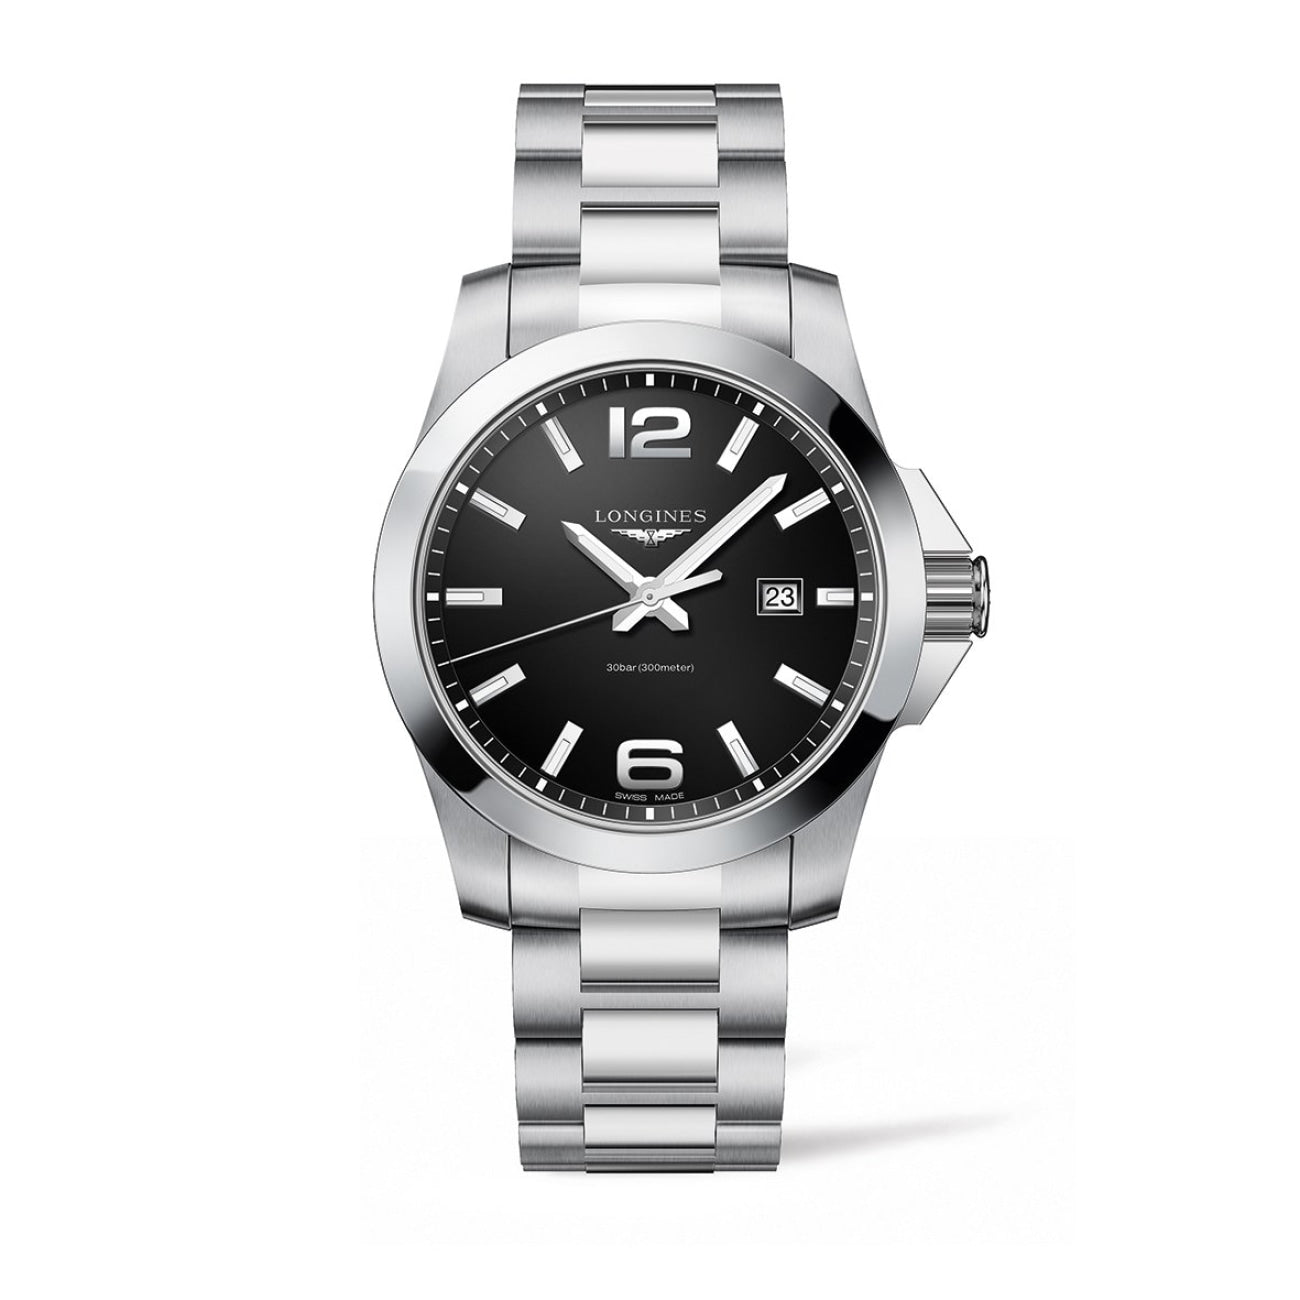 Longines Watches - Conquest 43Mm Stainless Steel | Manfredi Jewels